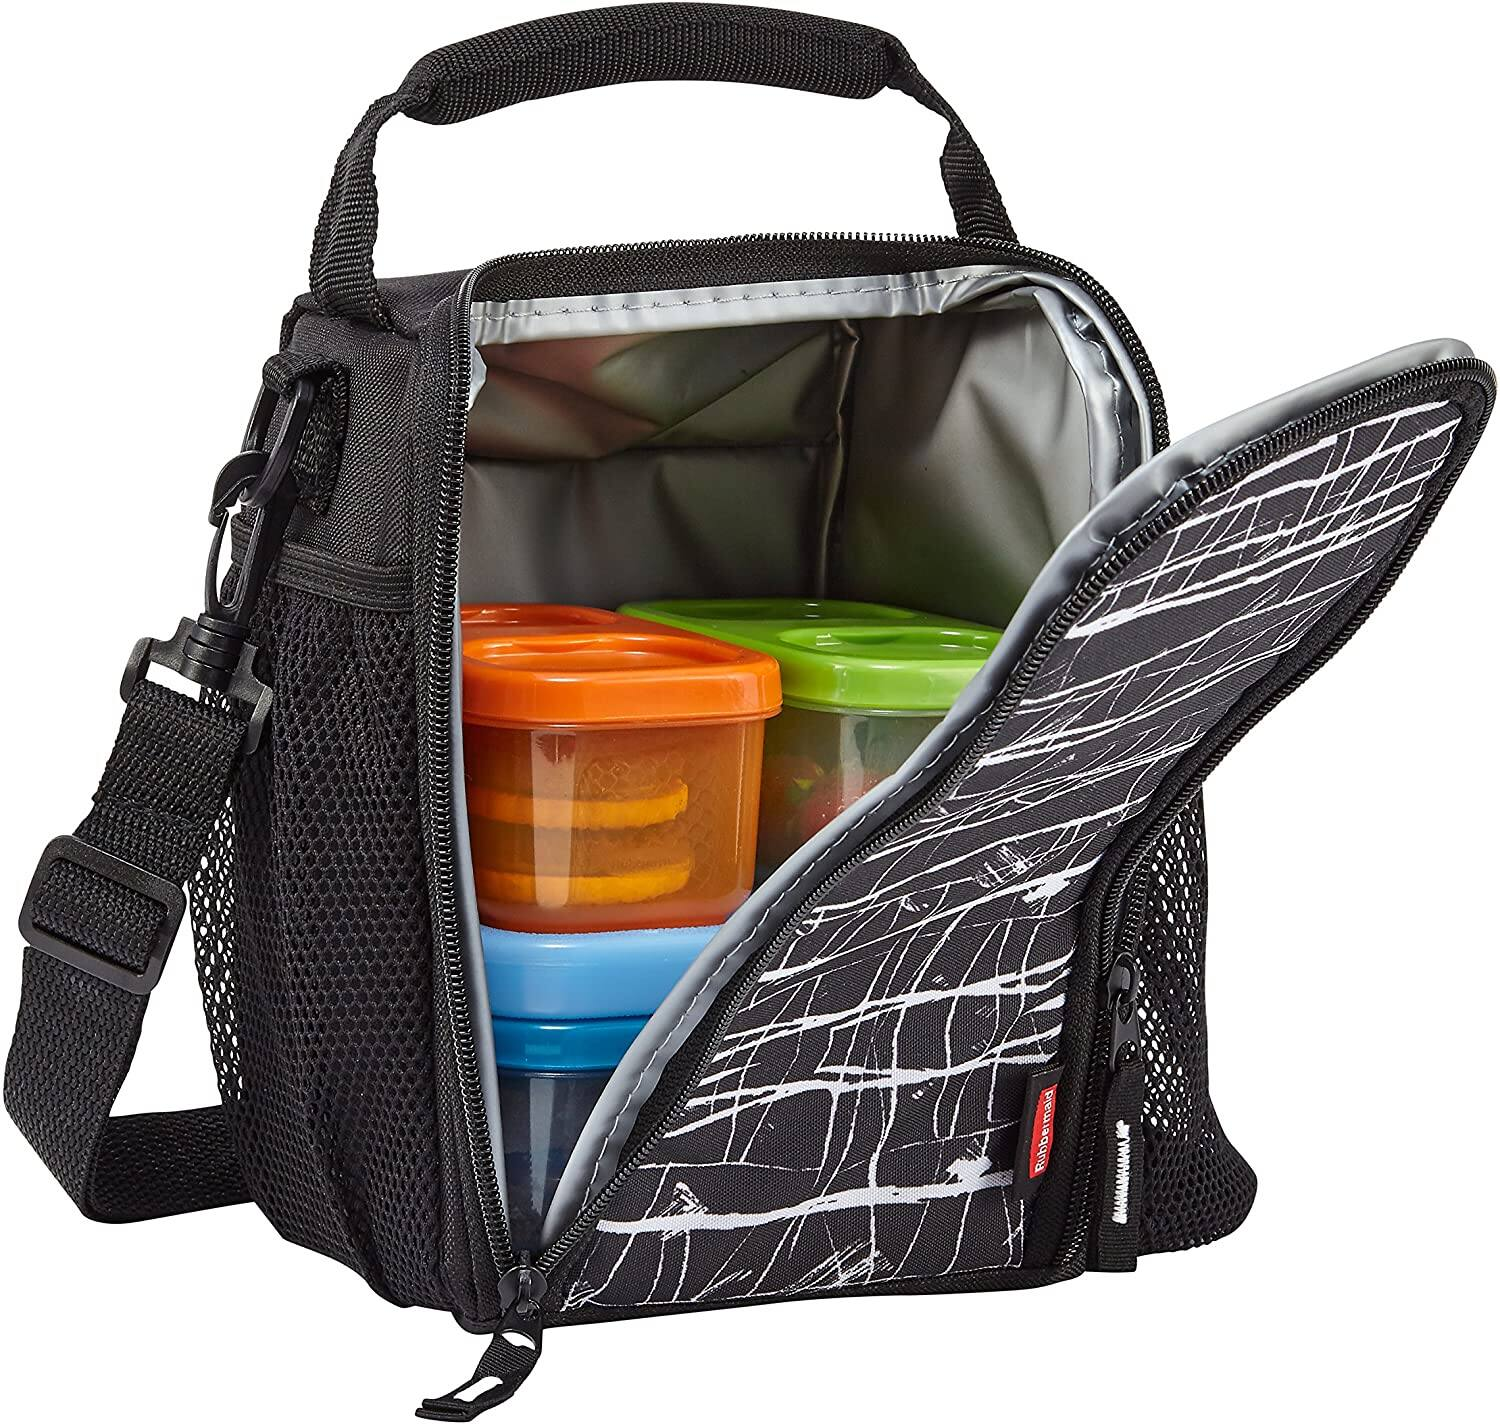 Rubbermaid LunchBlox Lunch Bag (Small, Black Etch) $5.08 + Free S&H w/ Prime or $25+